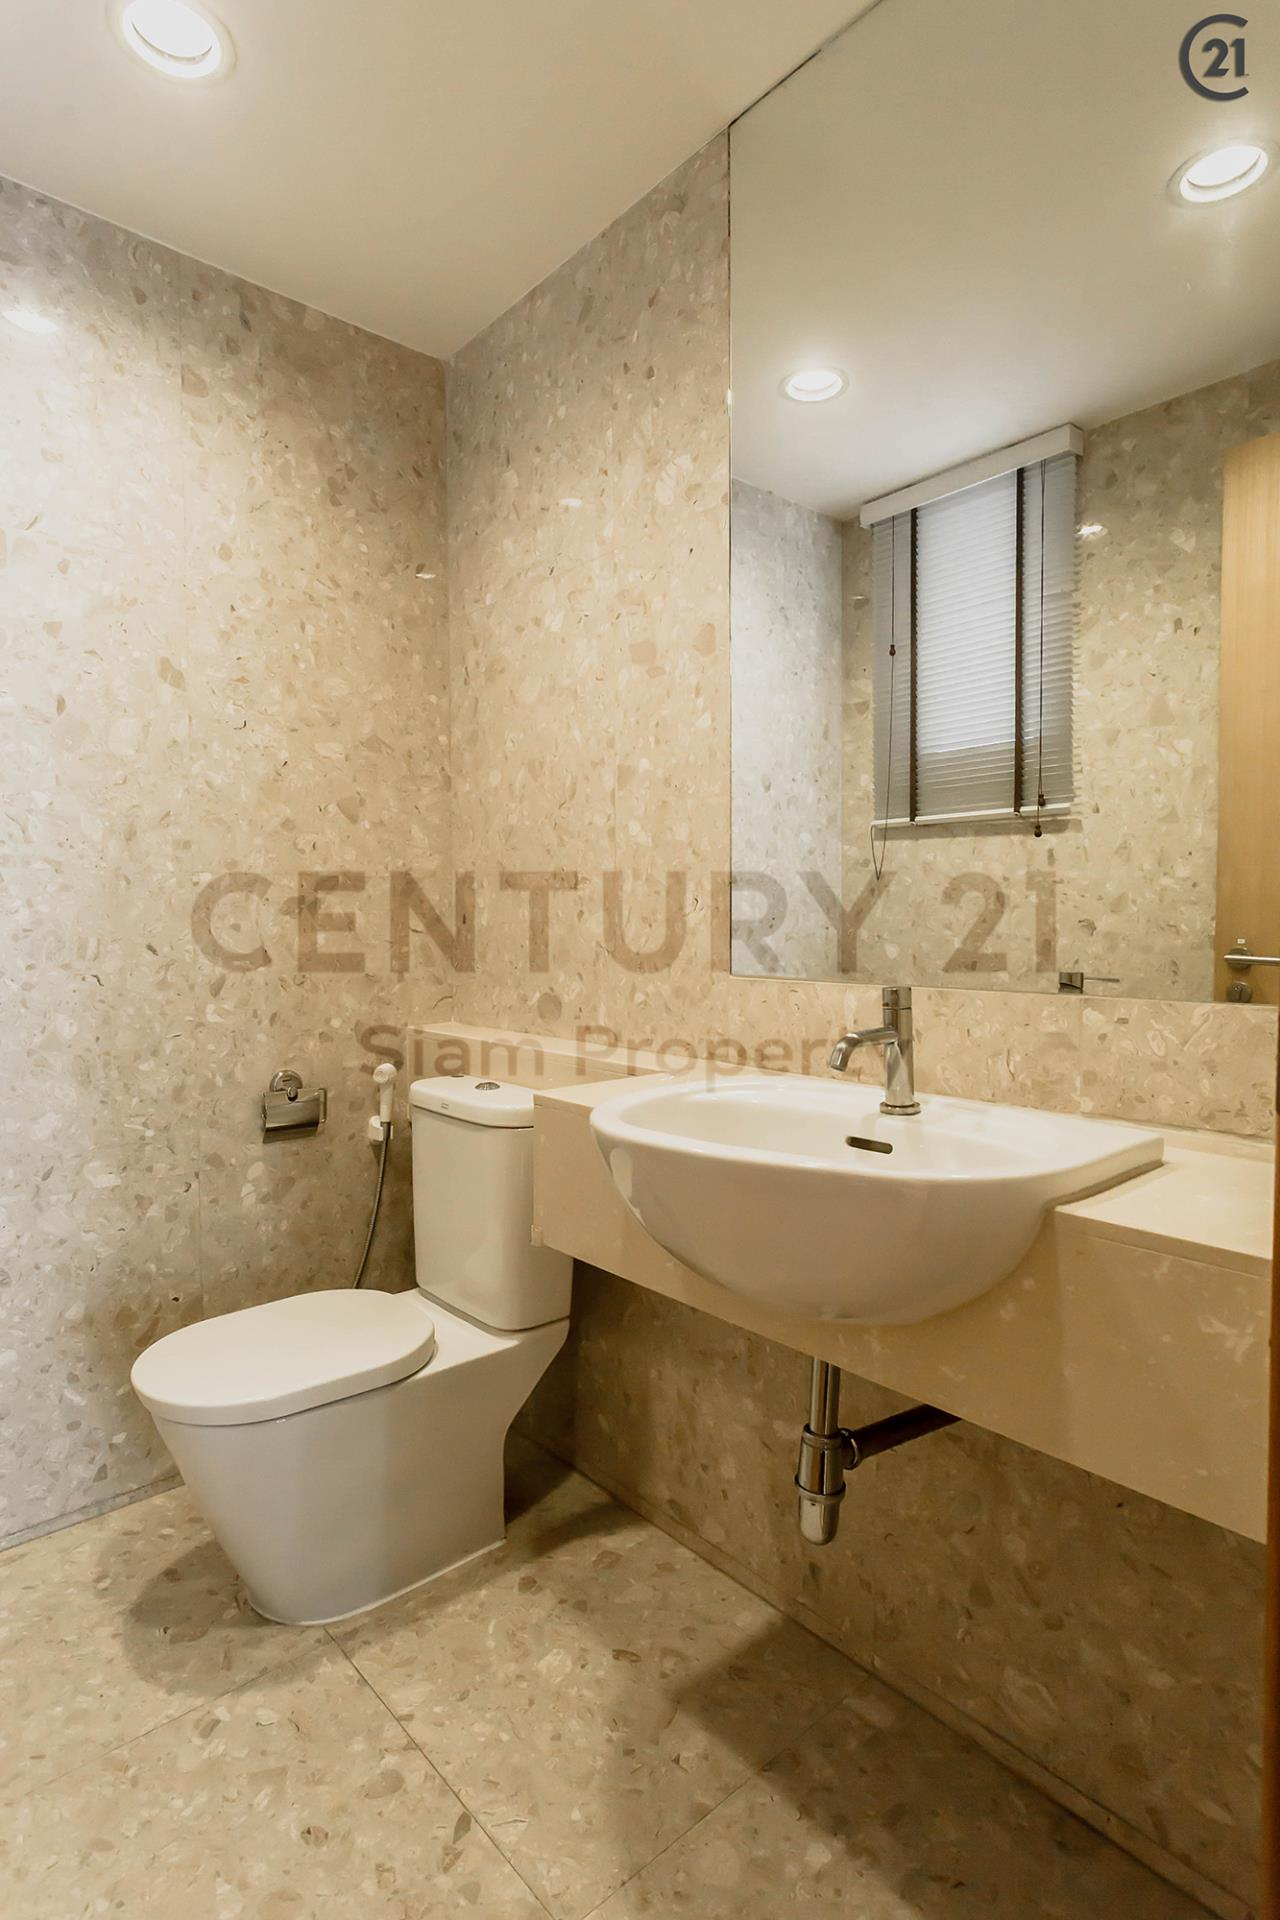 Century21 Siam Property Agency's Viscaya Private Residences 24